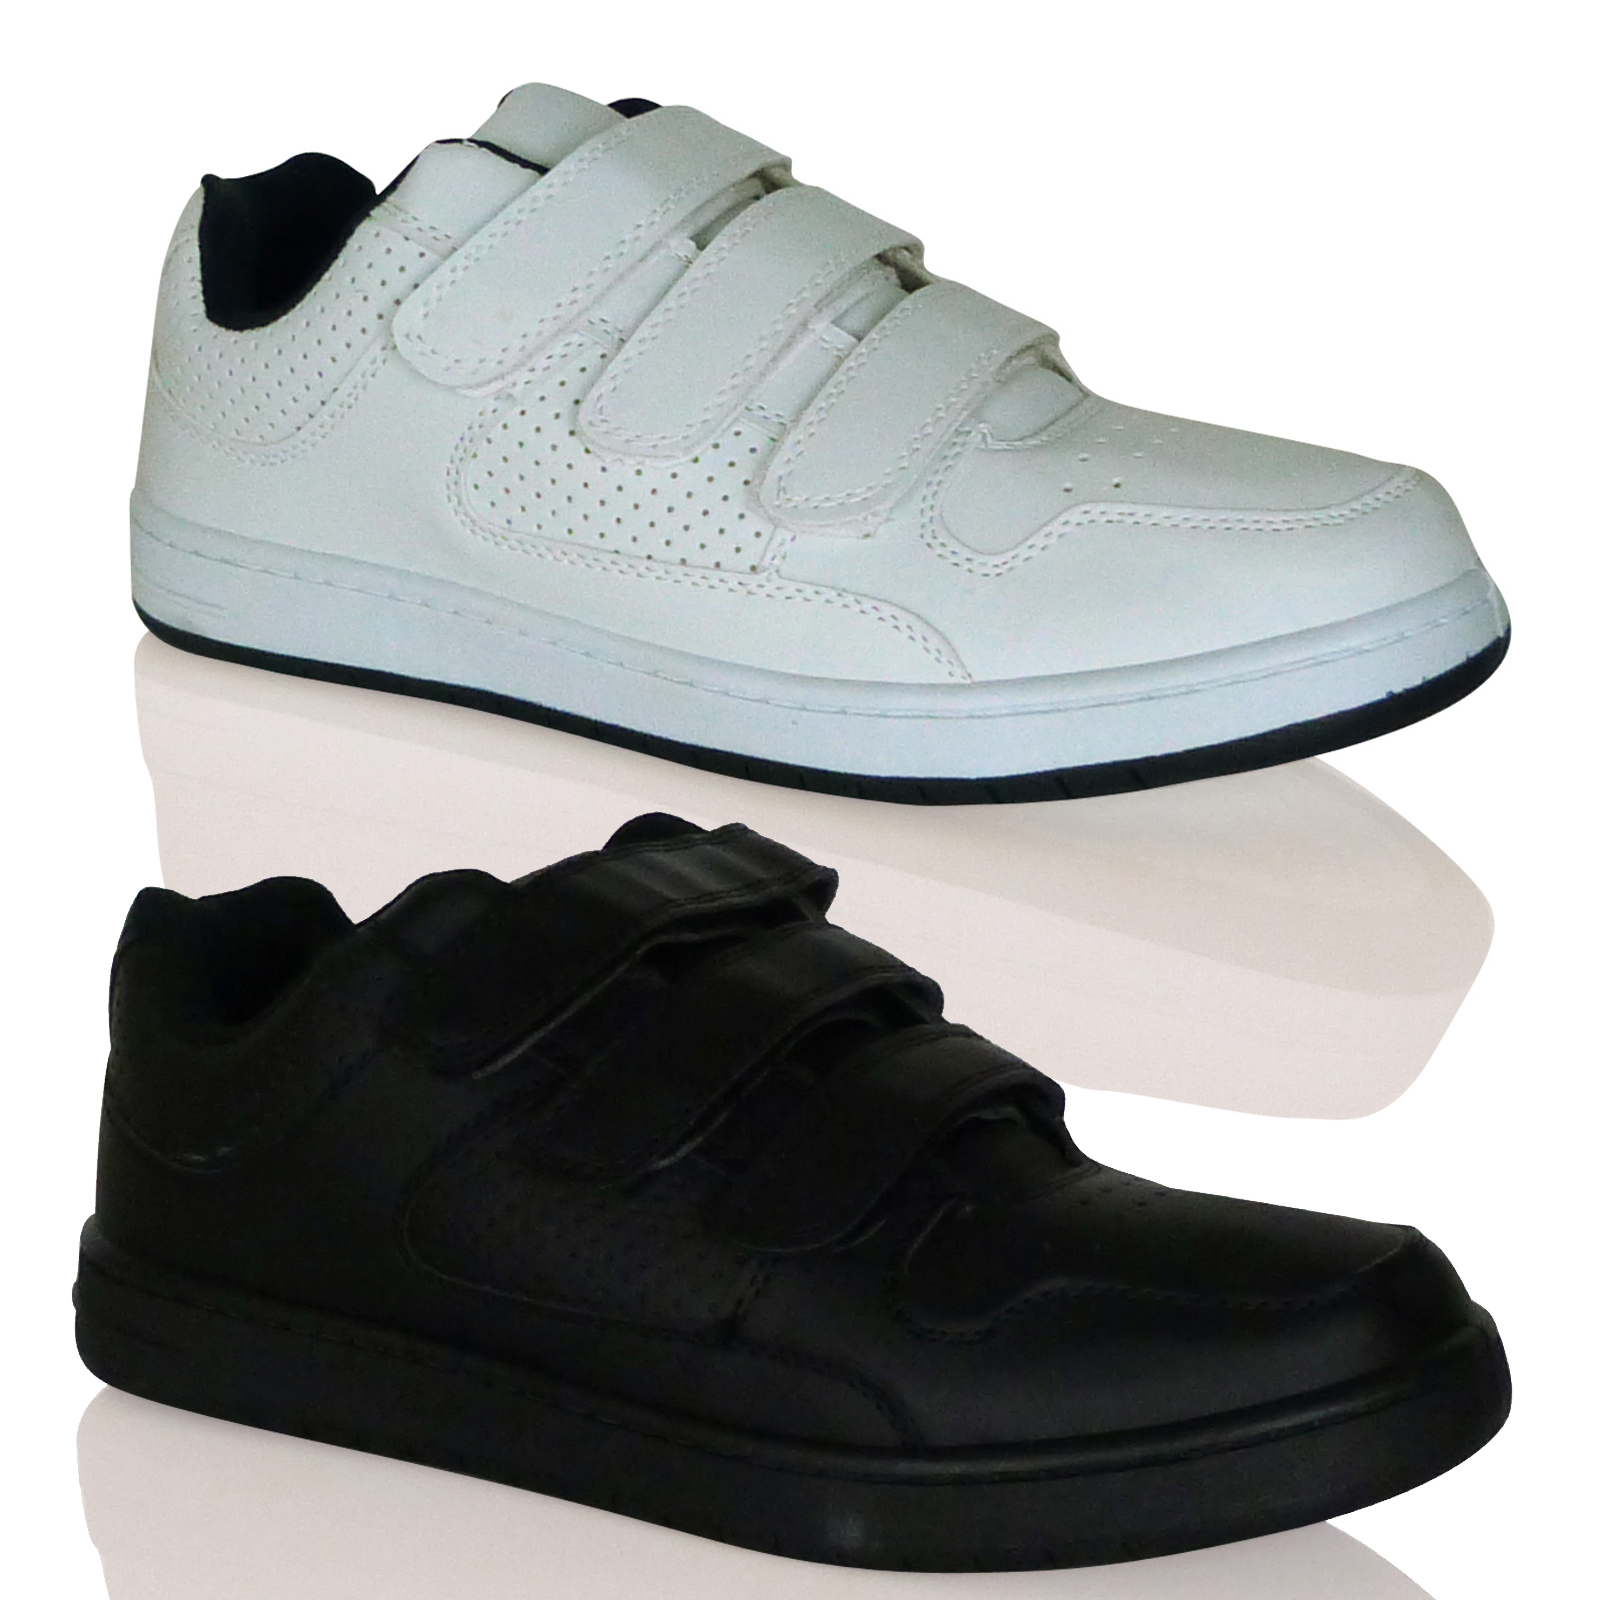 T1G Mens Trainers Velcro Sports Shoes Thick Sole Sneakers Gym Sports New Size